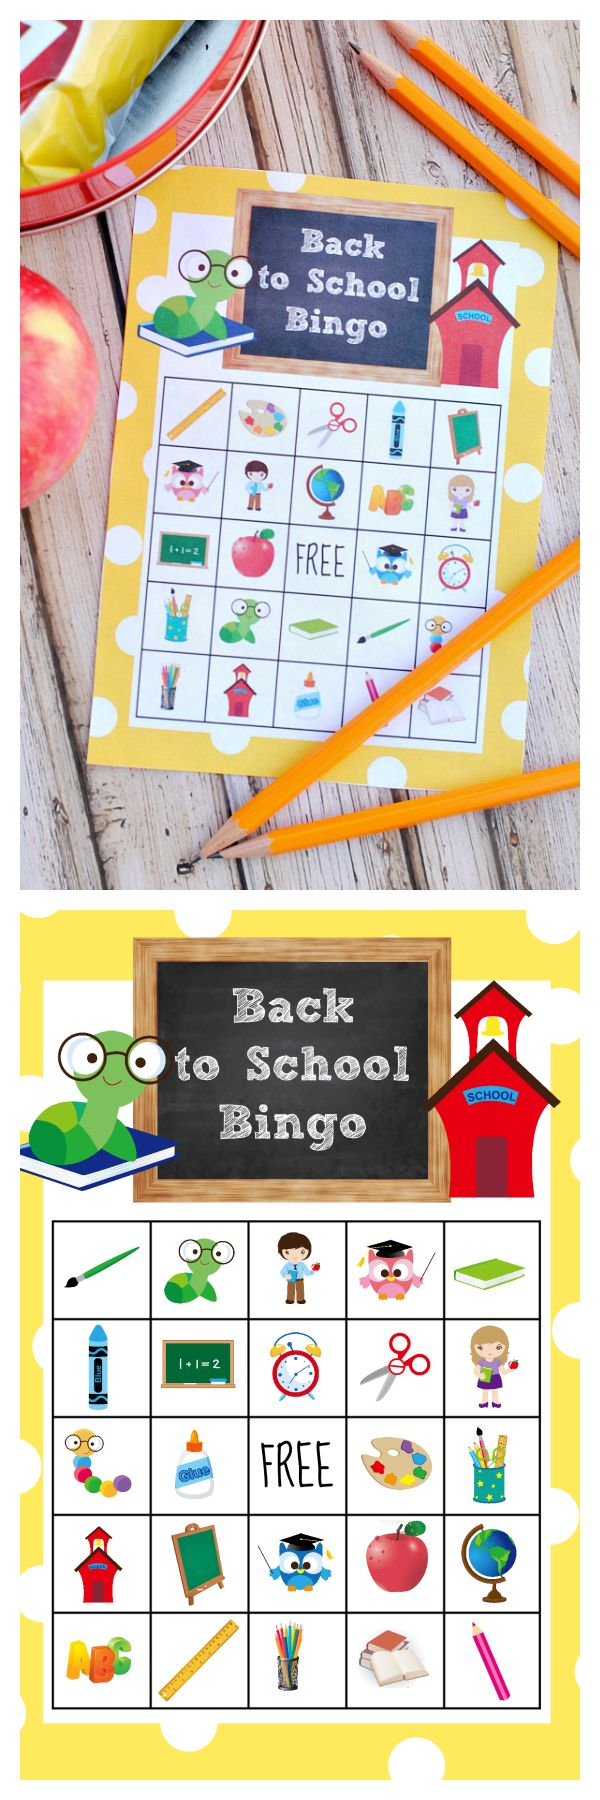 Free Printable Back to School Bingo Game